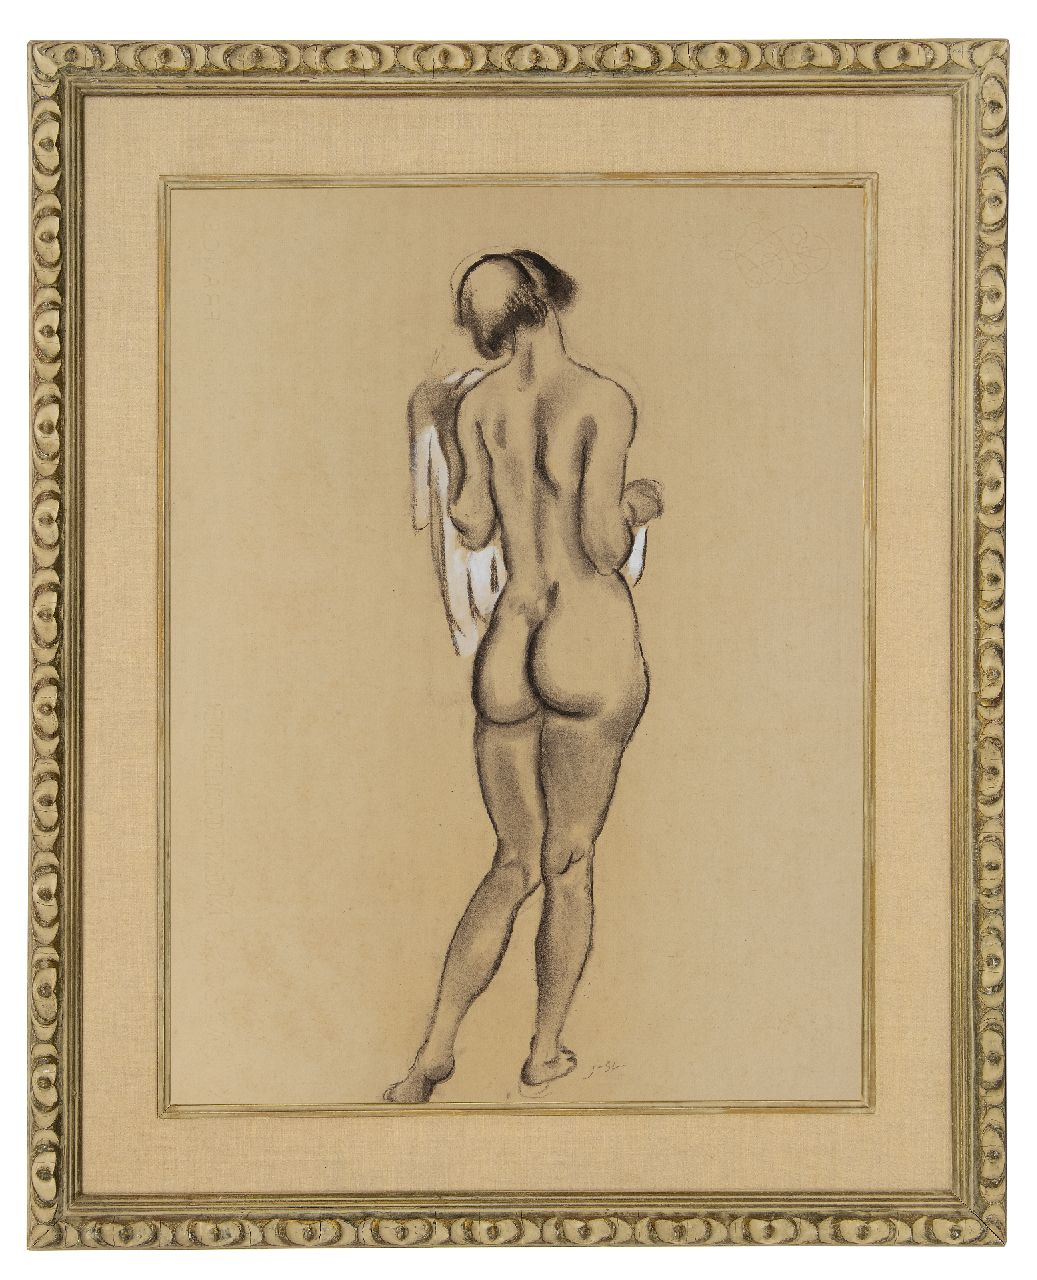 Sluijters J.C.B.  | Johannes Carolus Bernardus 'Jan' Sluijters | Watercolours and drawings offered for sale | Standing female nude, seen on the back, charcoal and watercolour on paper 61.9 x 47.6 cm, signed l.c. with initials and executed ca. 1920